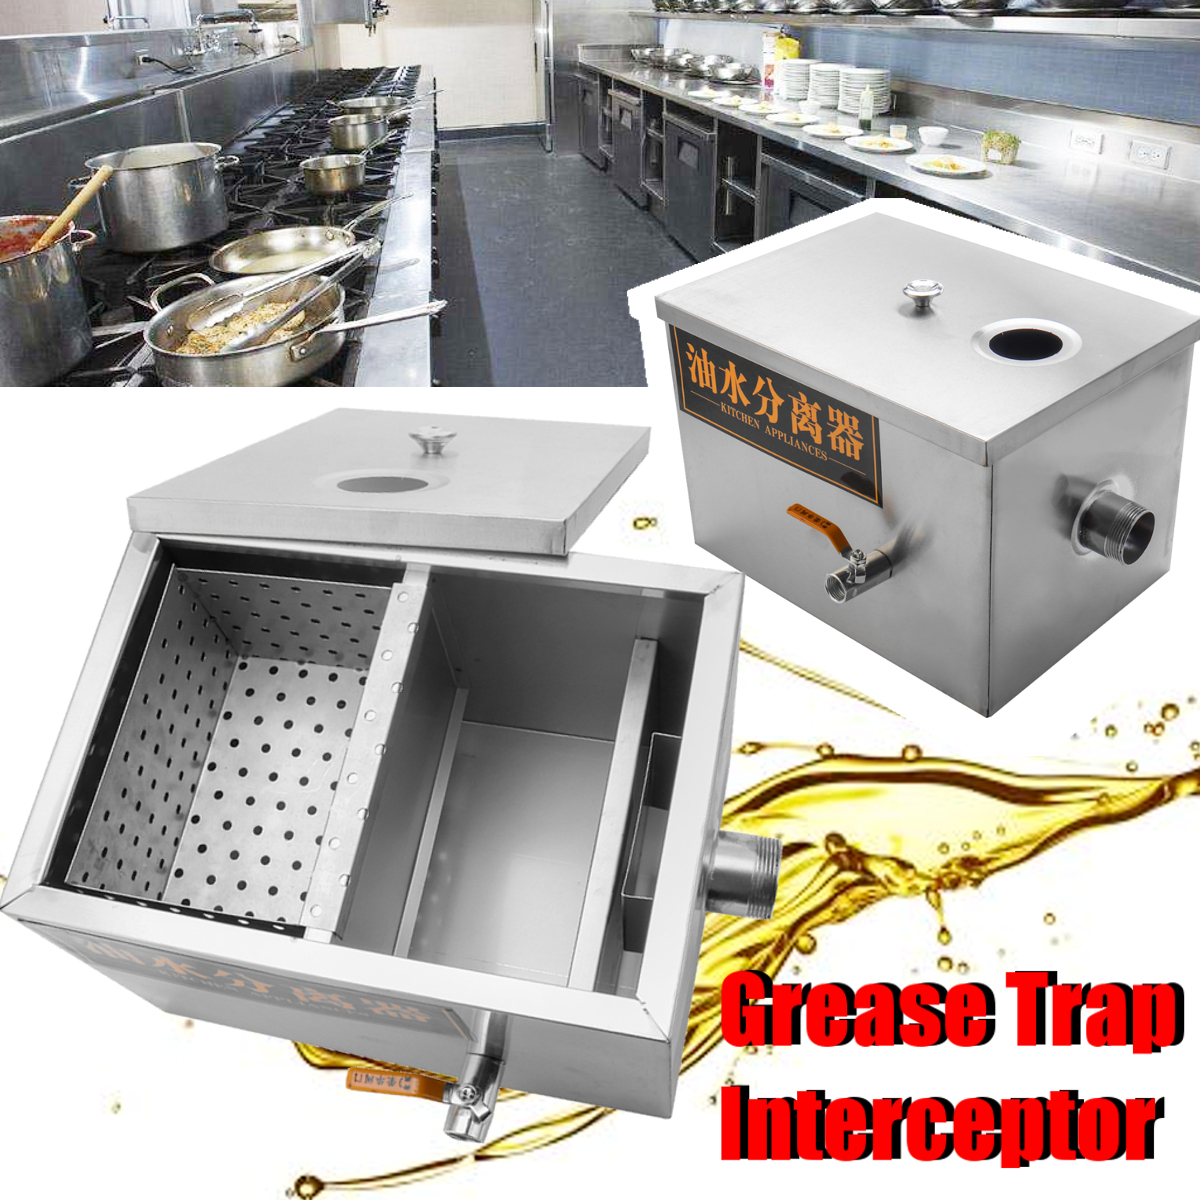 Industrial Kitchen Grease Trap: 500 (m3/h) Stainless Steel Grease Trap Interceptor